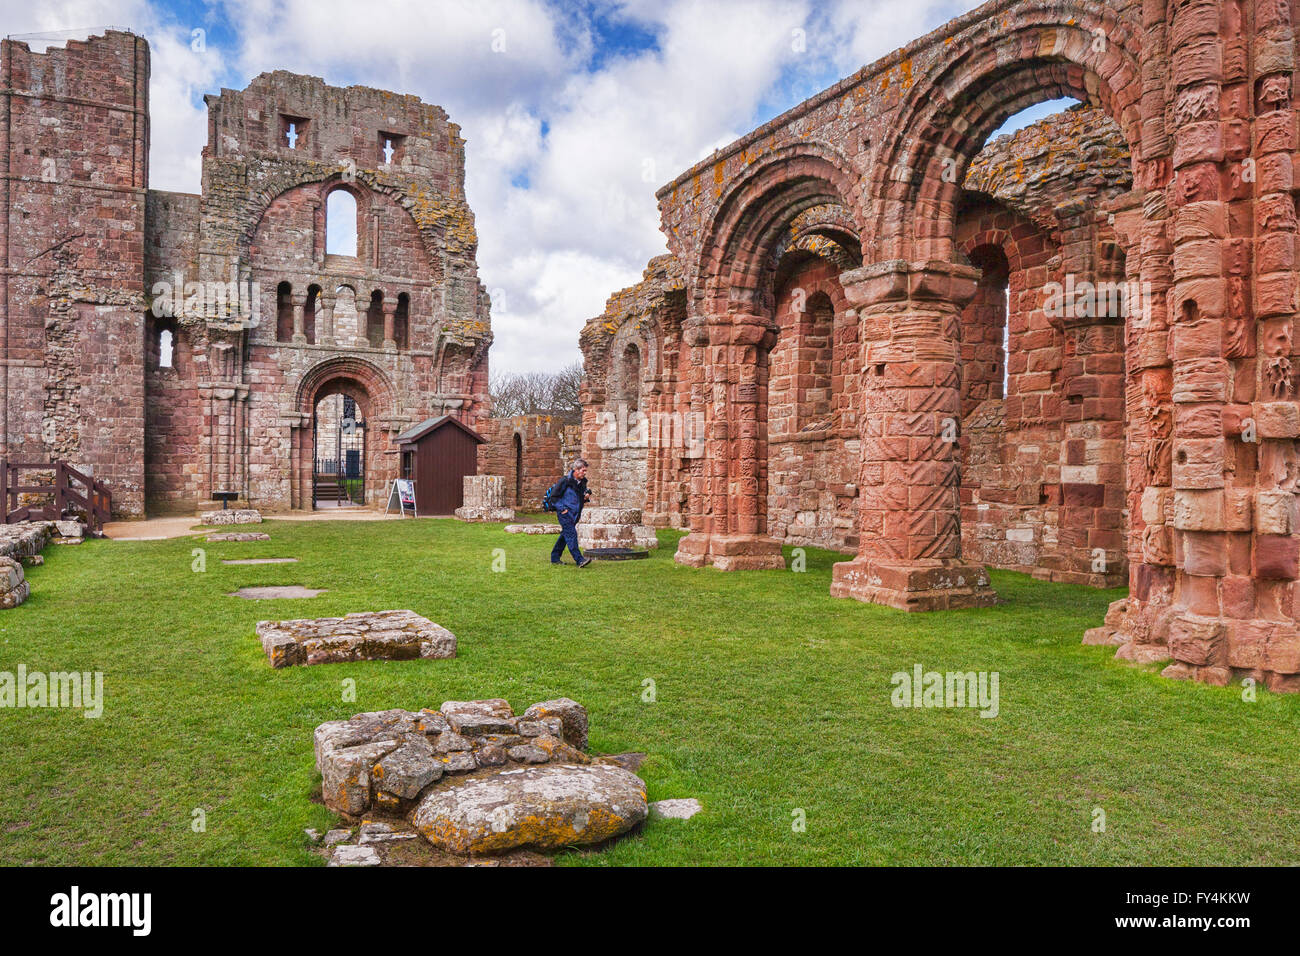 Visitor in the ruins of Lindisfarne Priory, Holy Island, Northumberland, England, UK - Stock Image